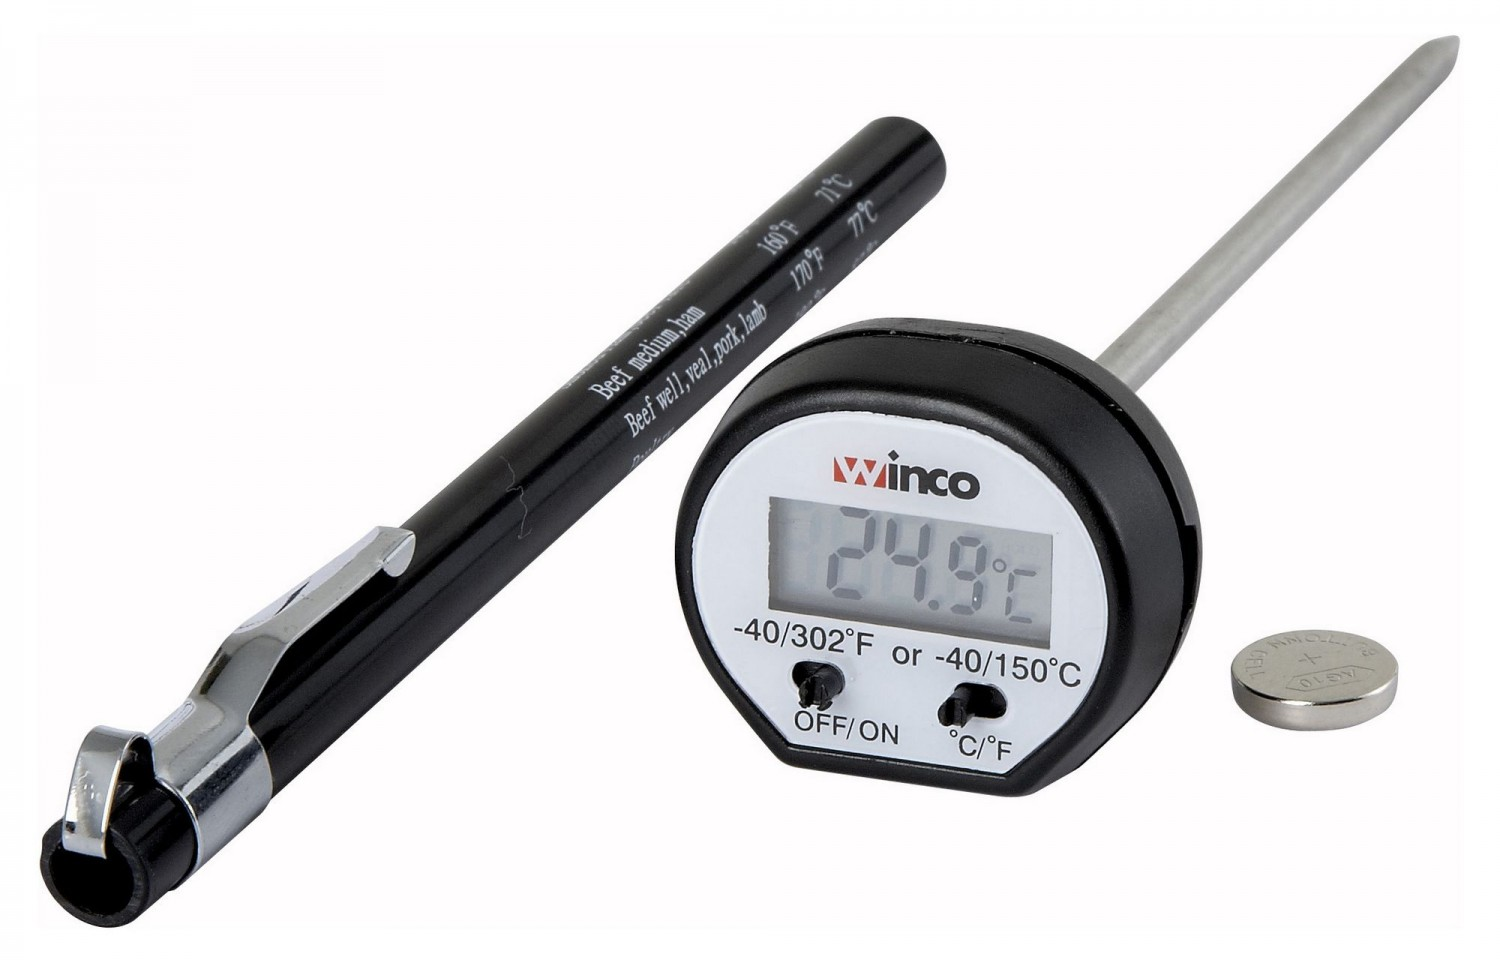 Winco TMT-DG1 Pocket Thermometer